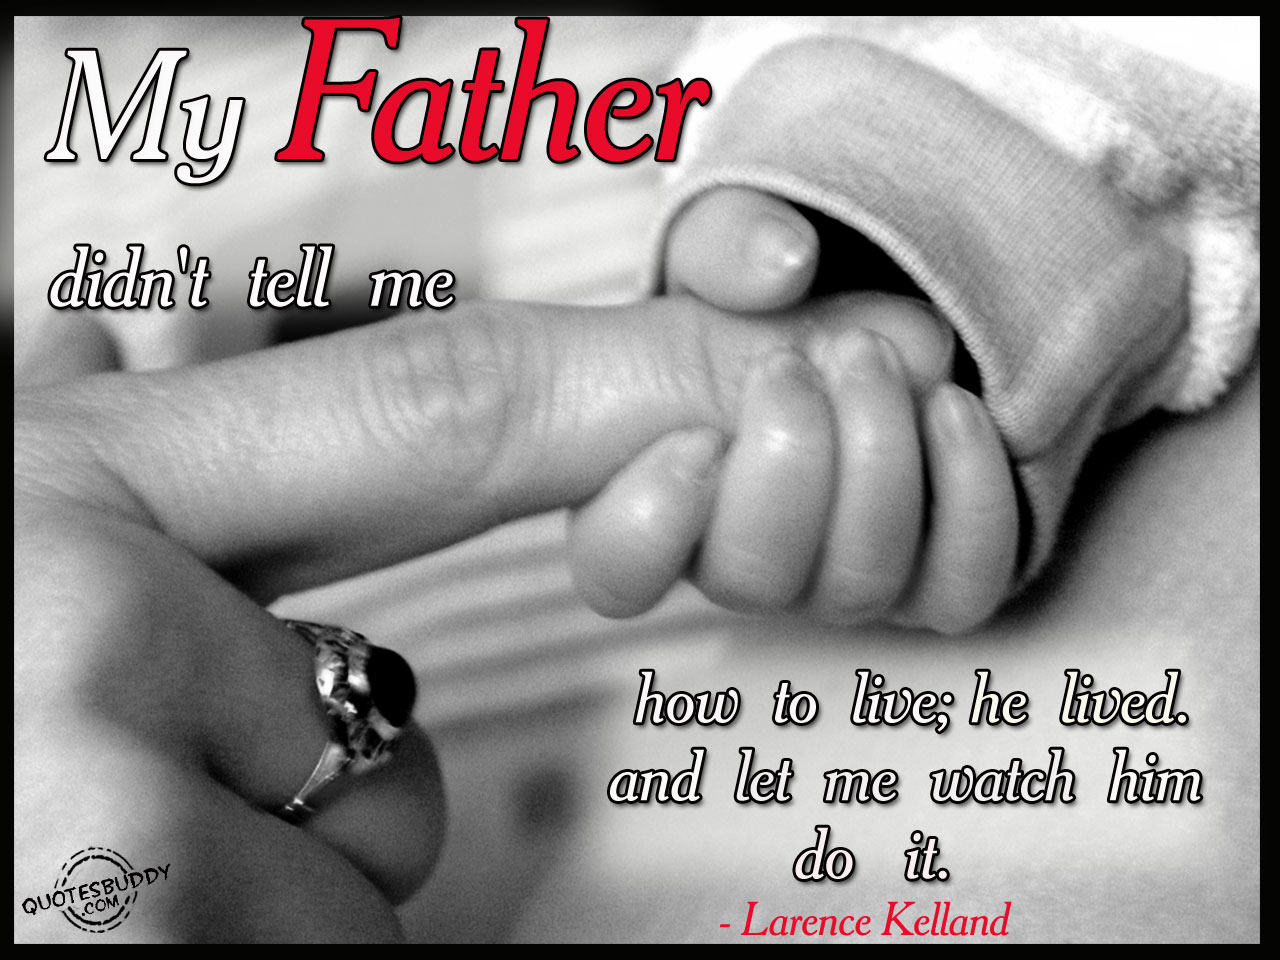 3d Wallpaper In Ludhiana Download Popular Wallpapers 5 Stars The Family Man Quotes